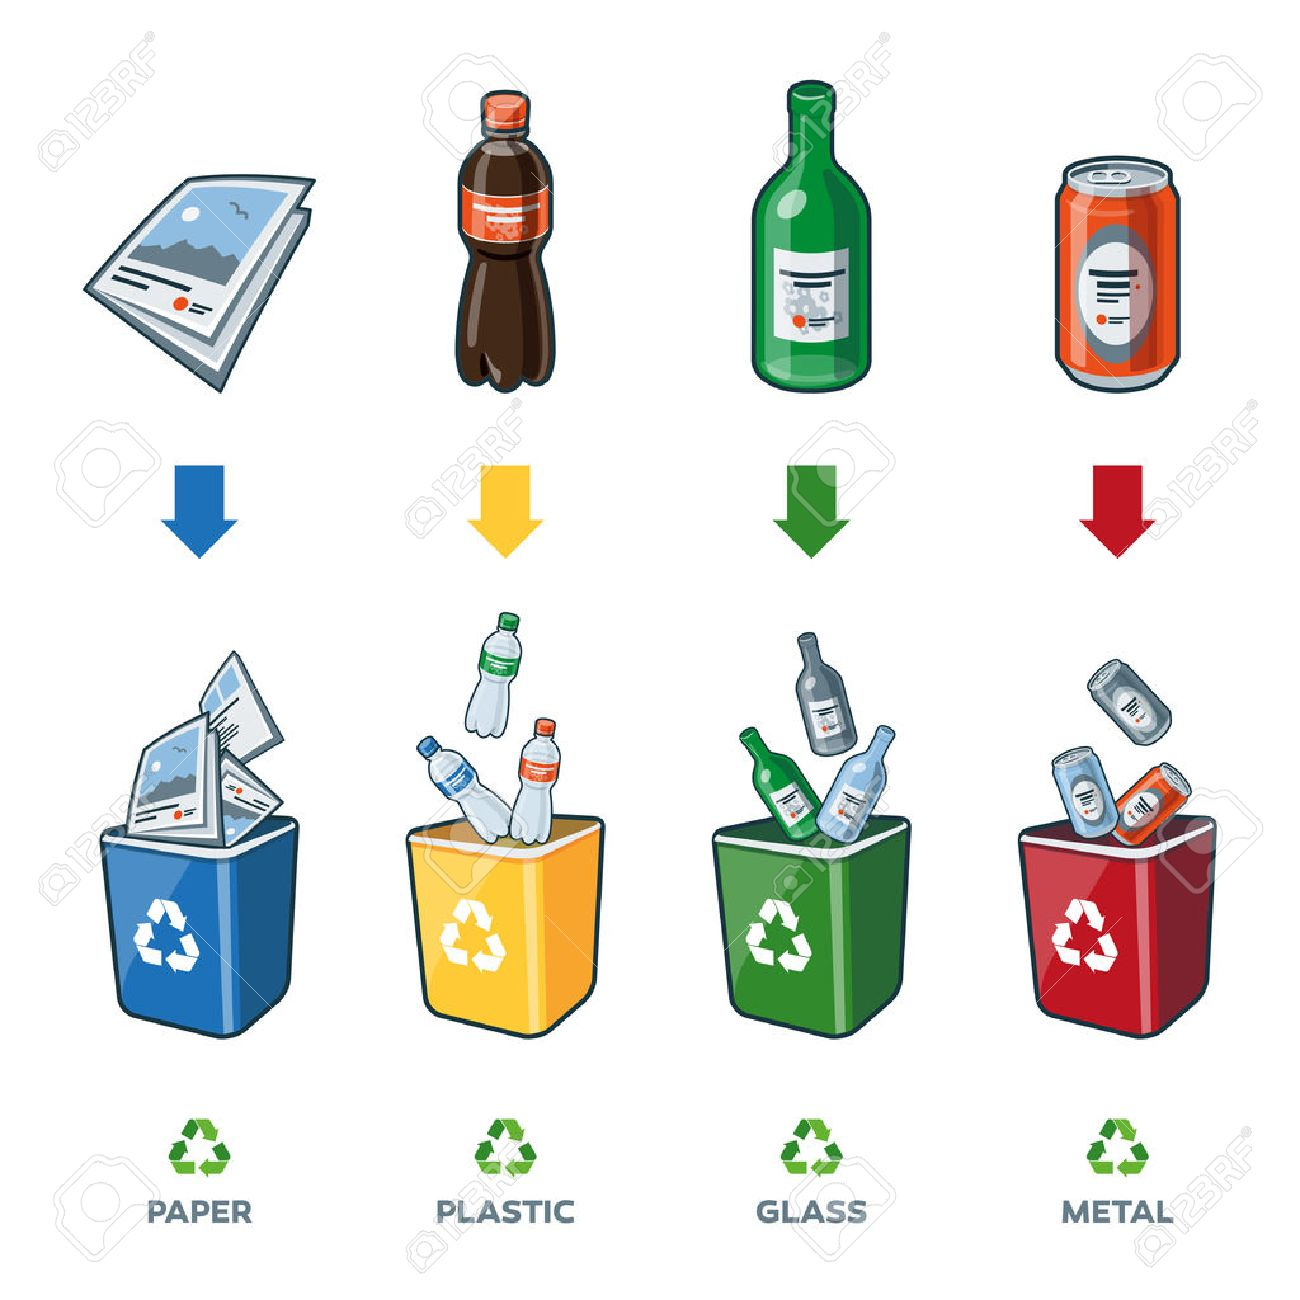 four recycling bins illustration with paper plastic glass and